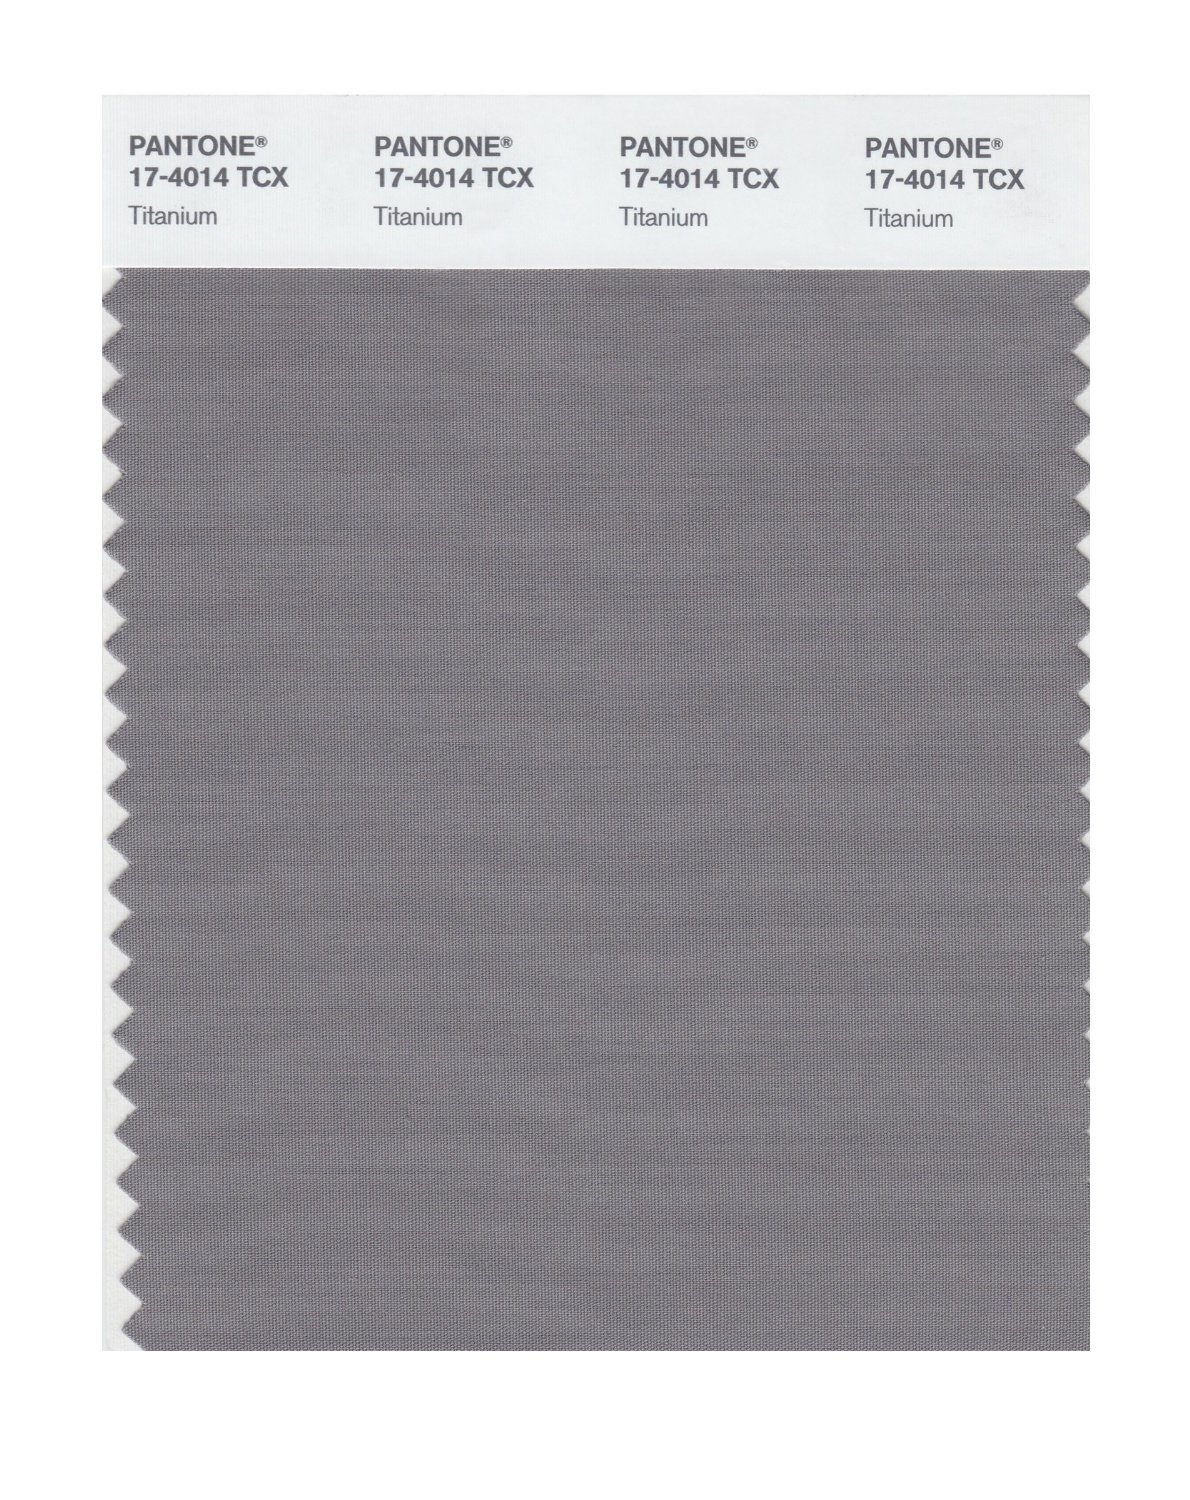 Pantone Smart Swatch 17-4014 Titanium